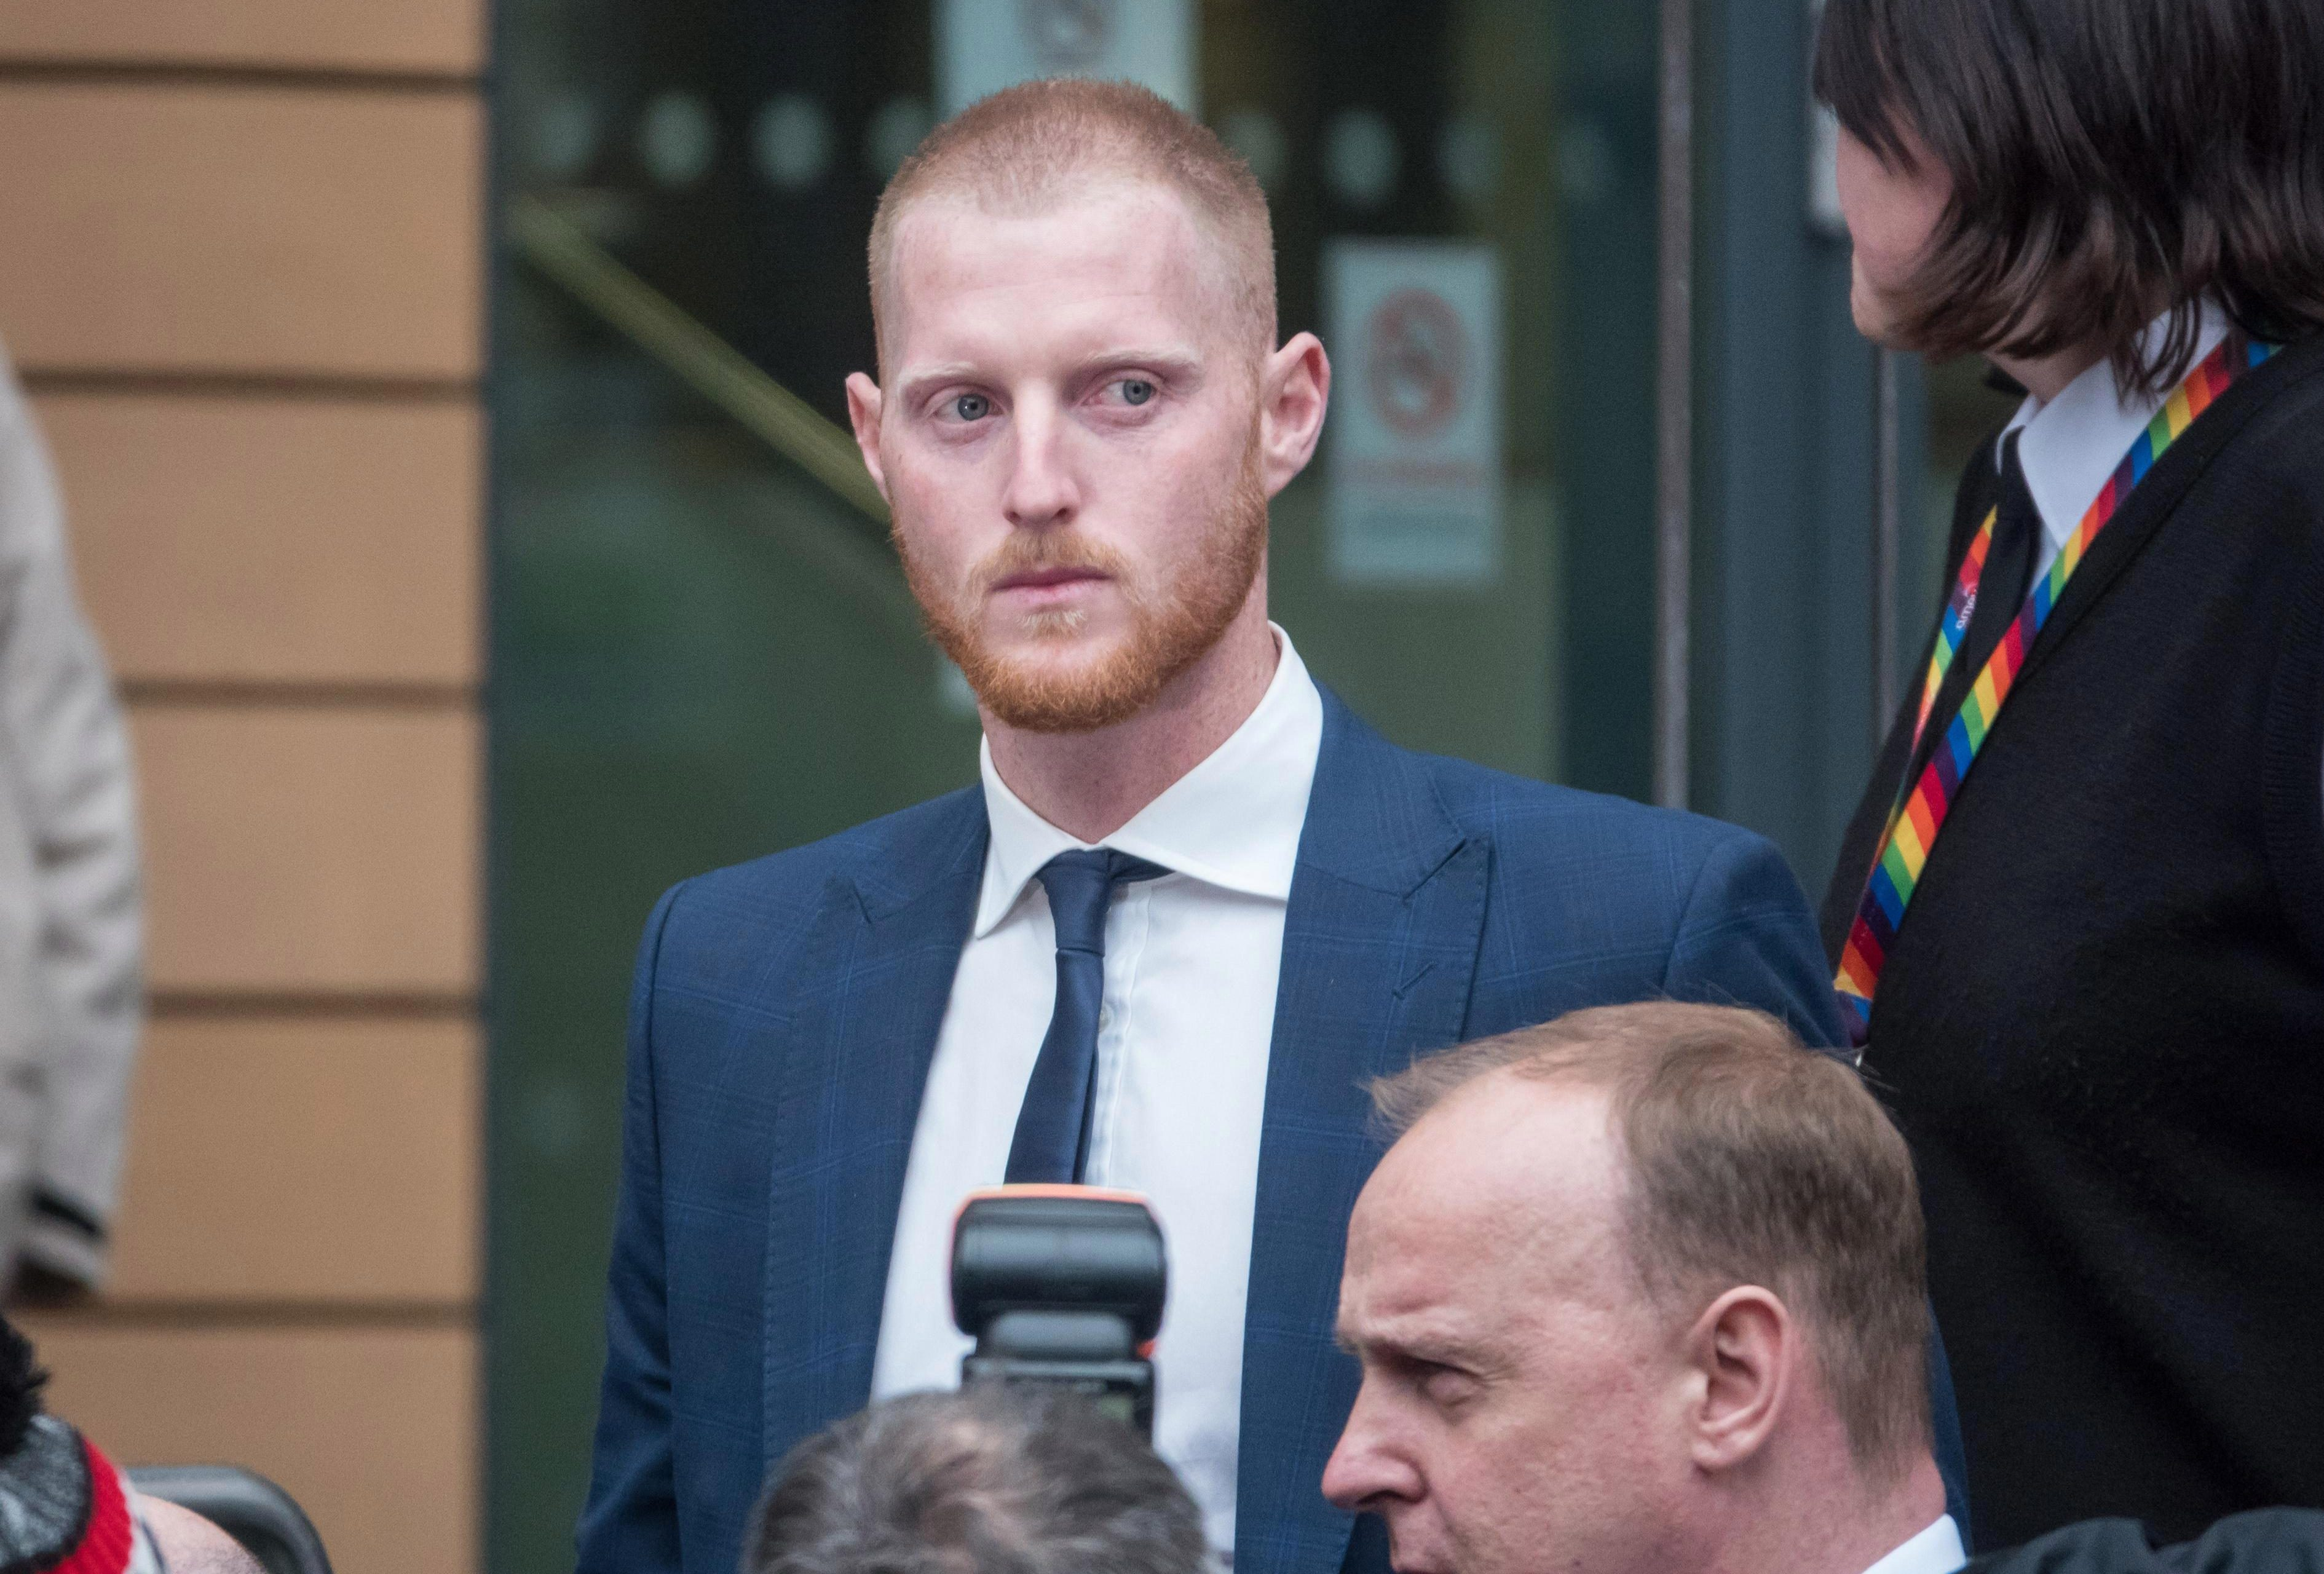 Stokes leaves court after pleading not guilty to affray